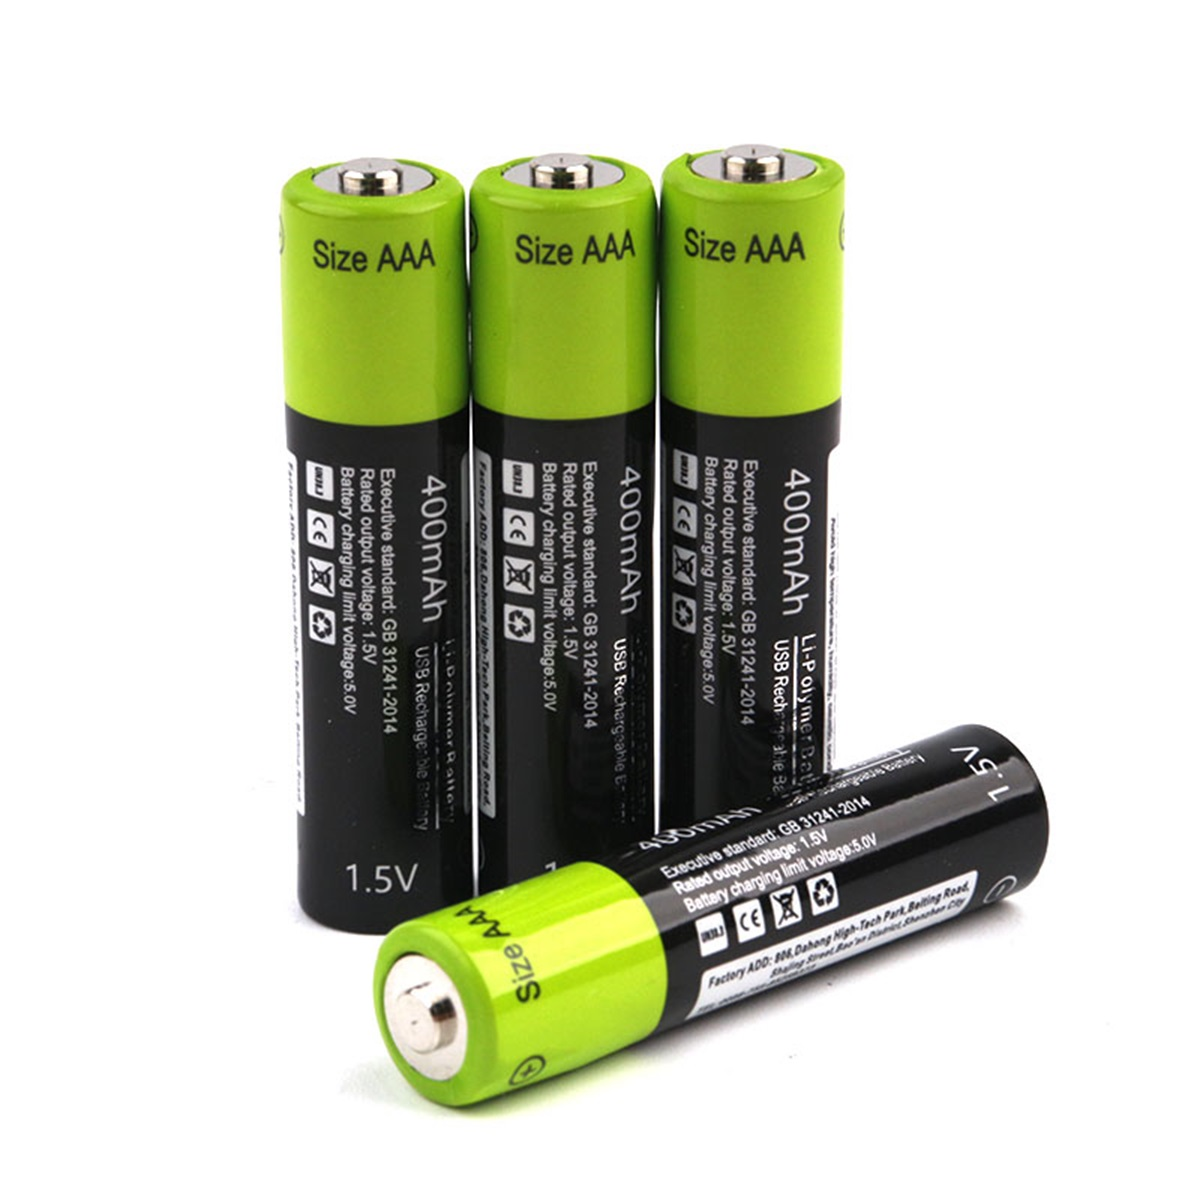 RS AAA Rechargeable Battery Znter 400mah Mirco USB 1.5v Rechargeable lithium polymer battery with charging cable image